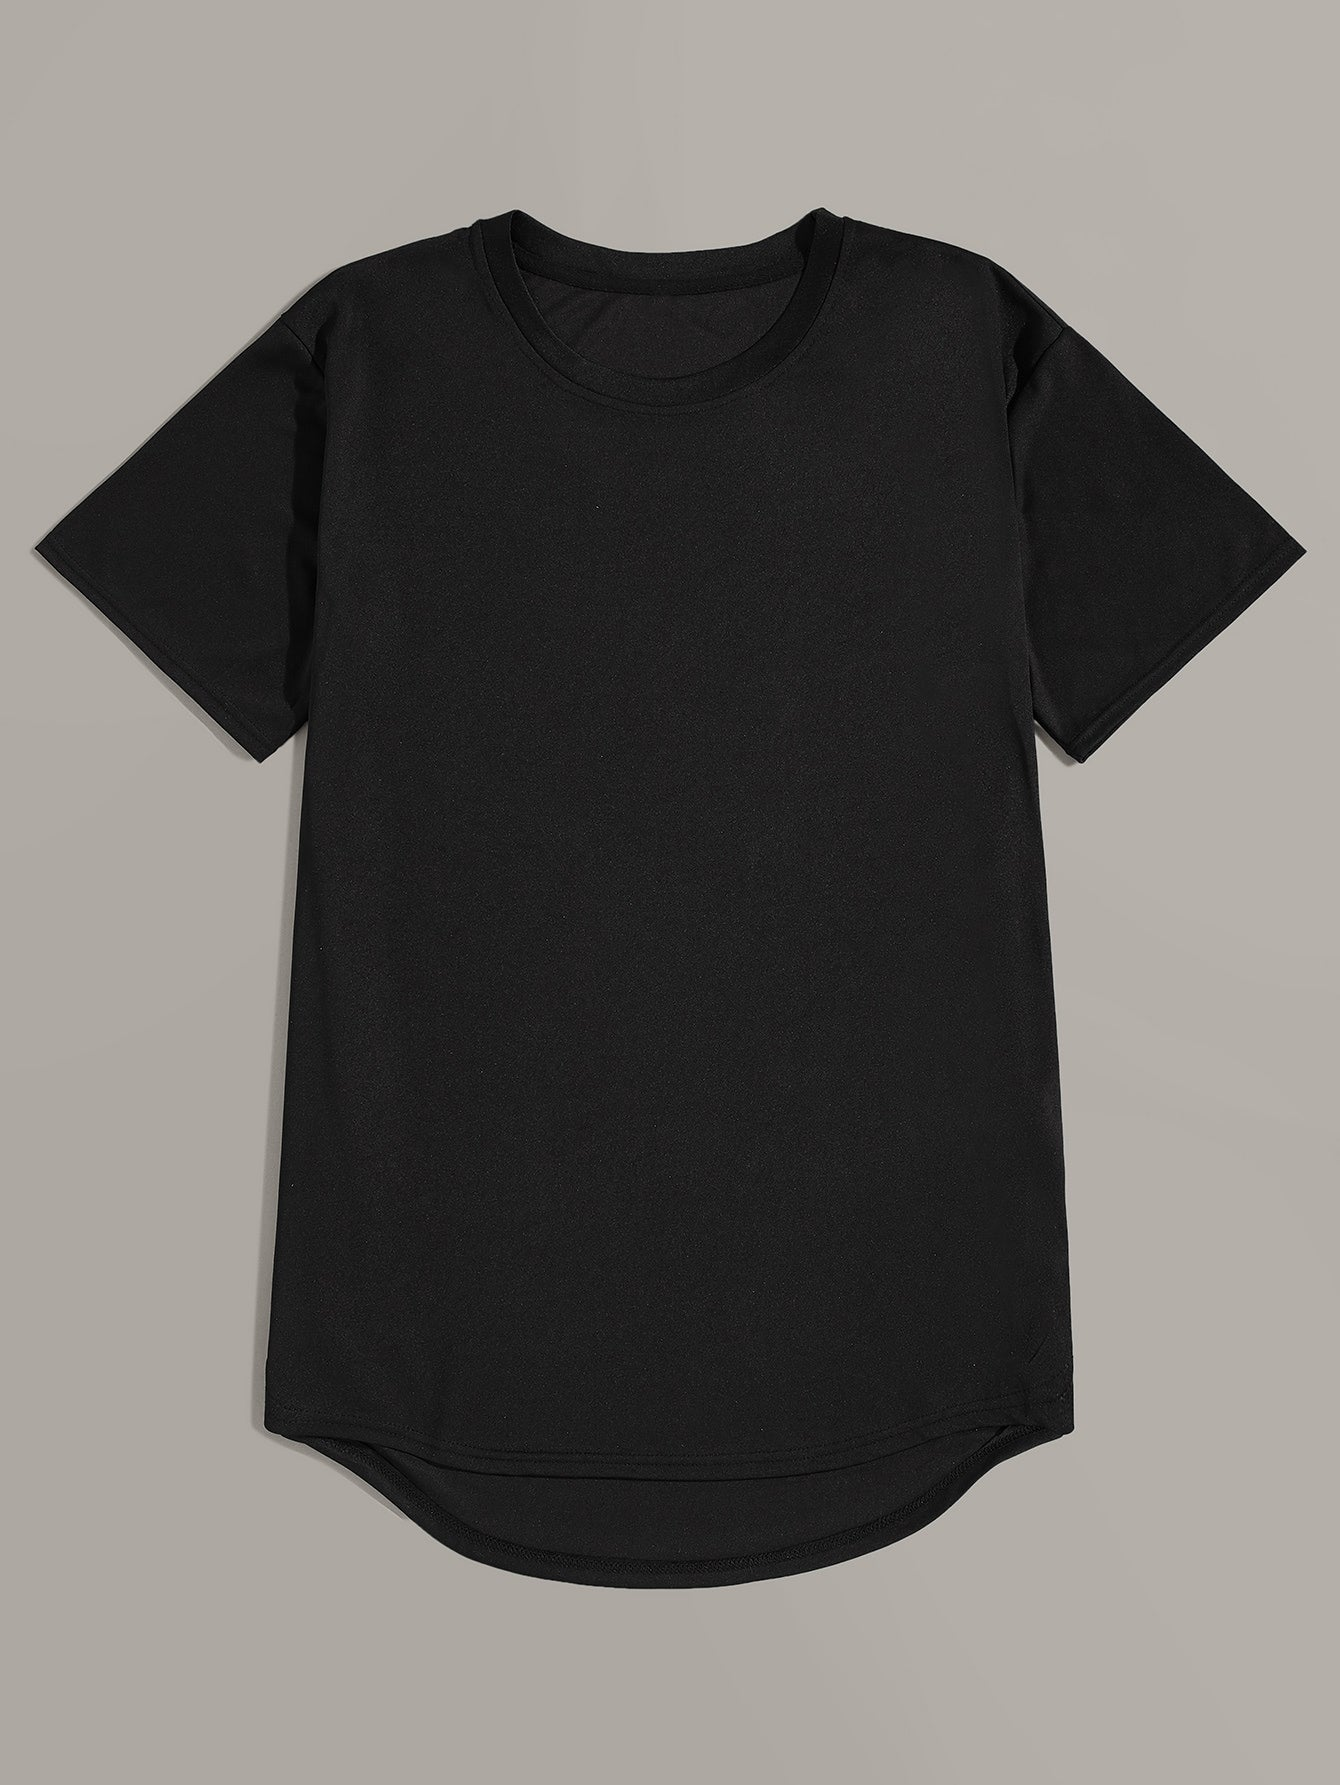 Men Dip Hem Solid Basics Tee 2pcs - mroutfit